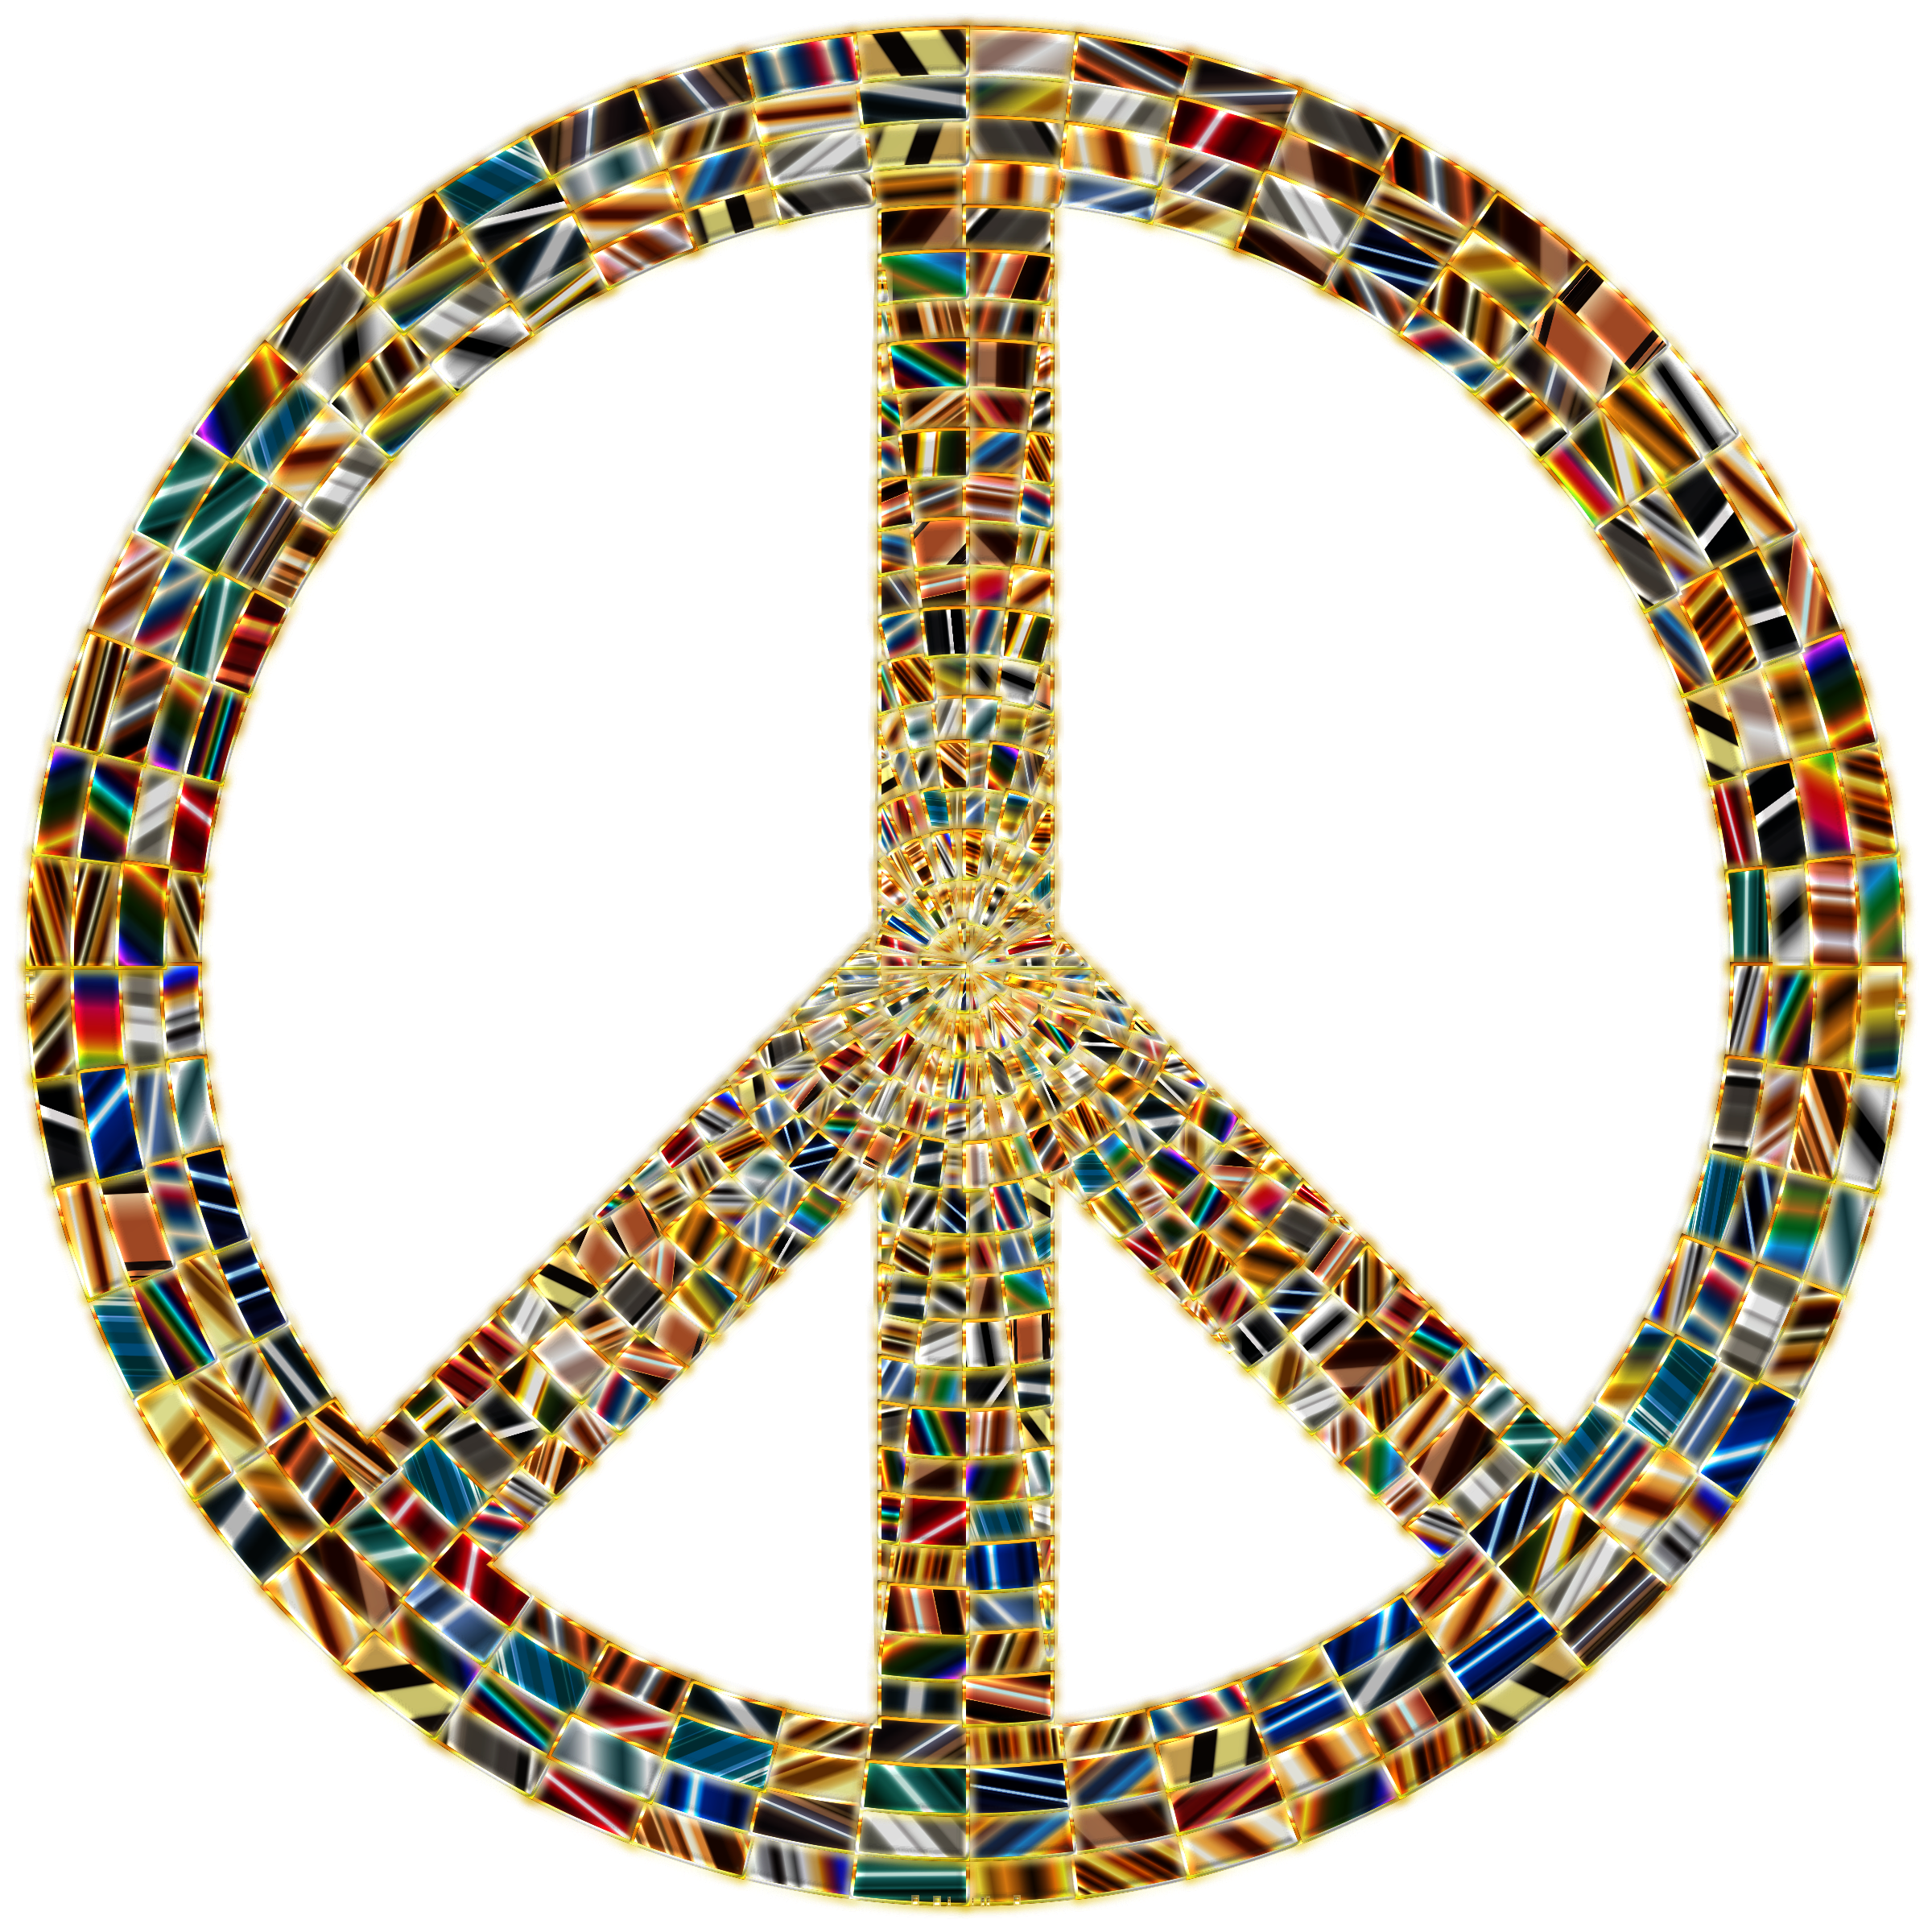 Peace Sign clipart instagram Background No clipart Sign collections